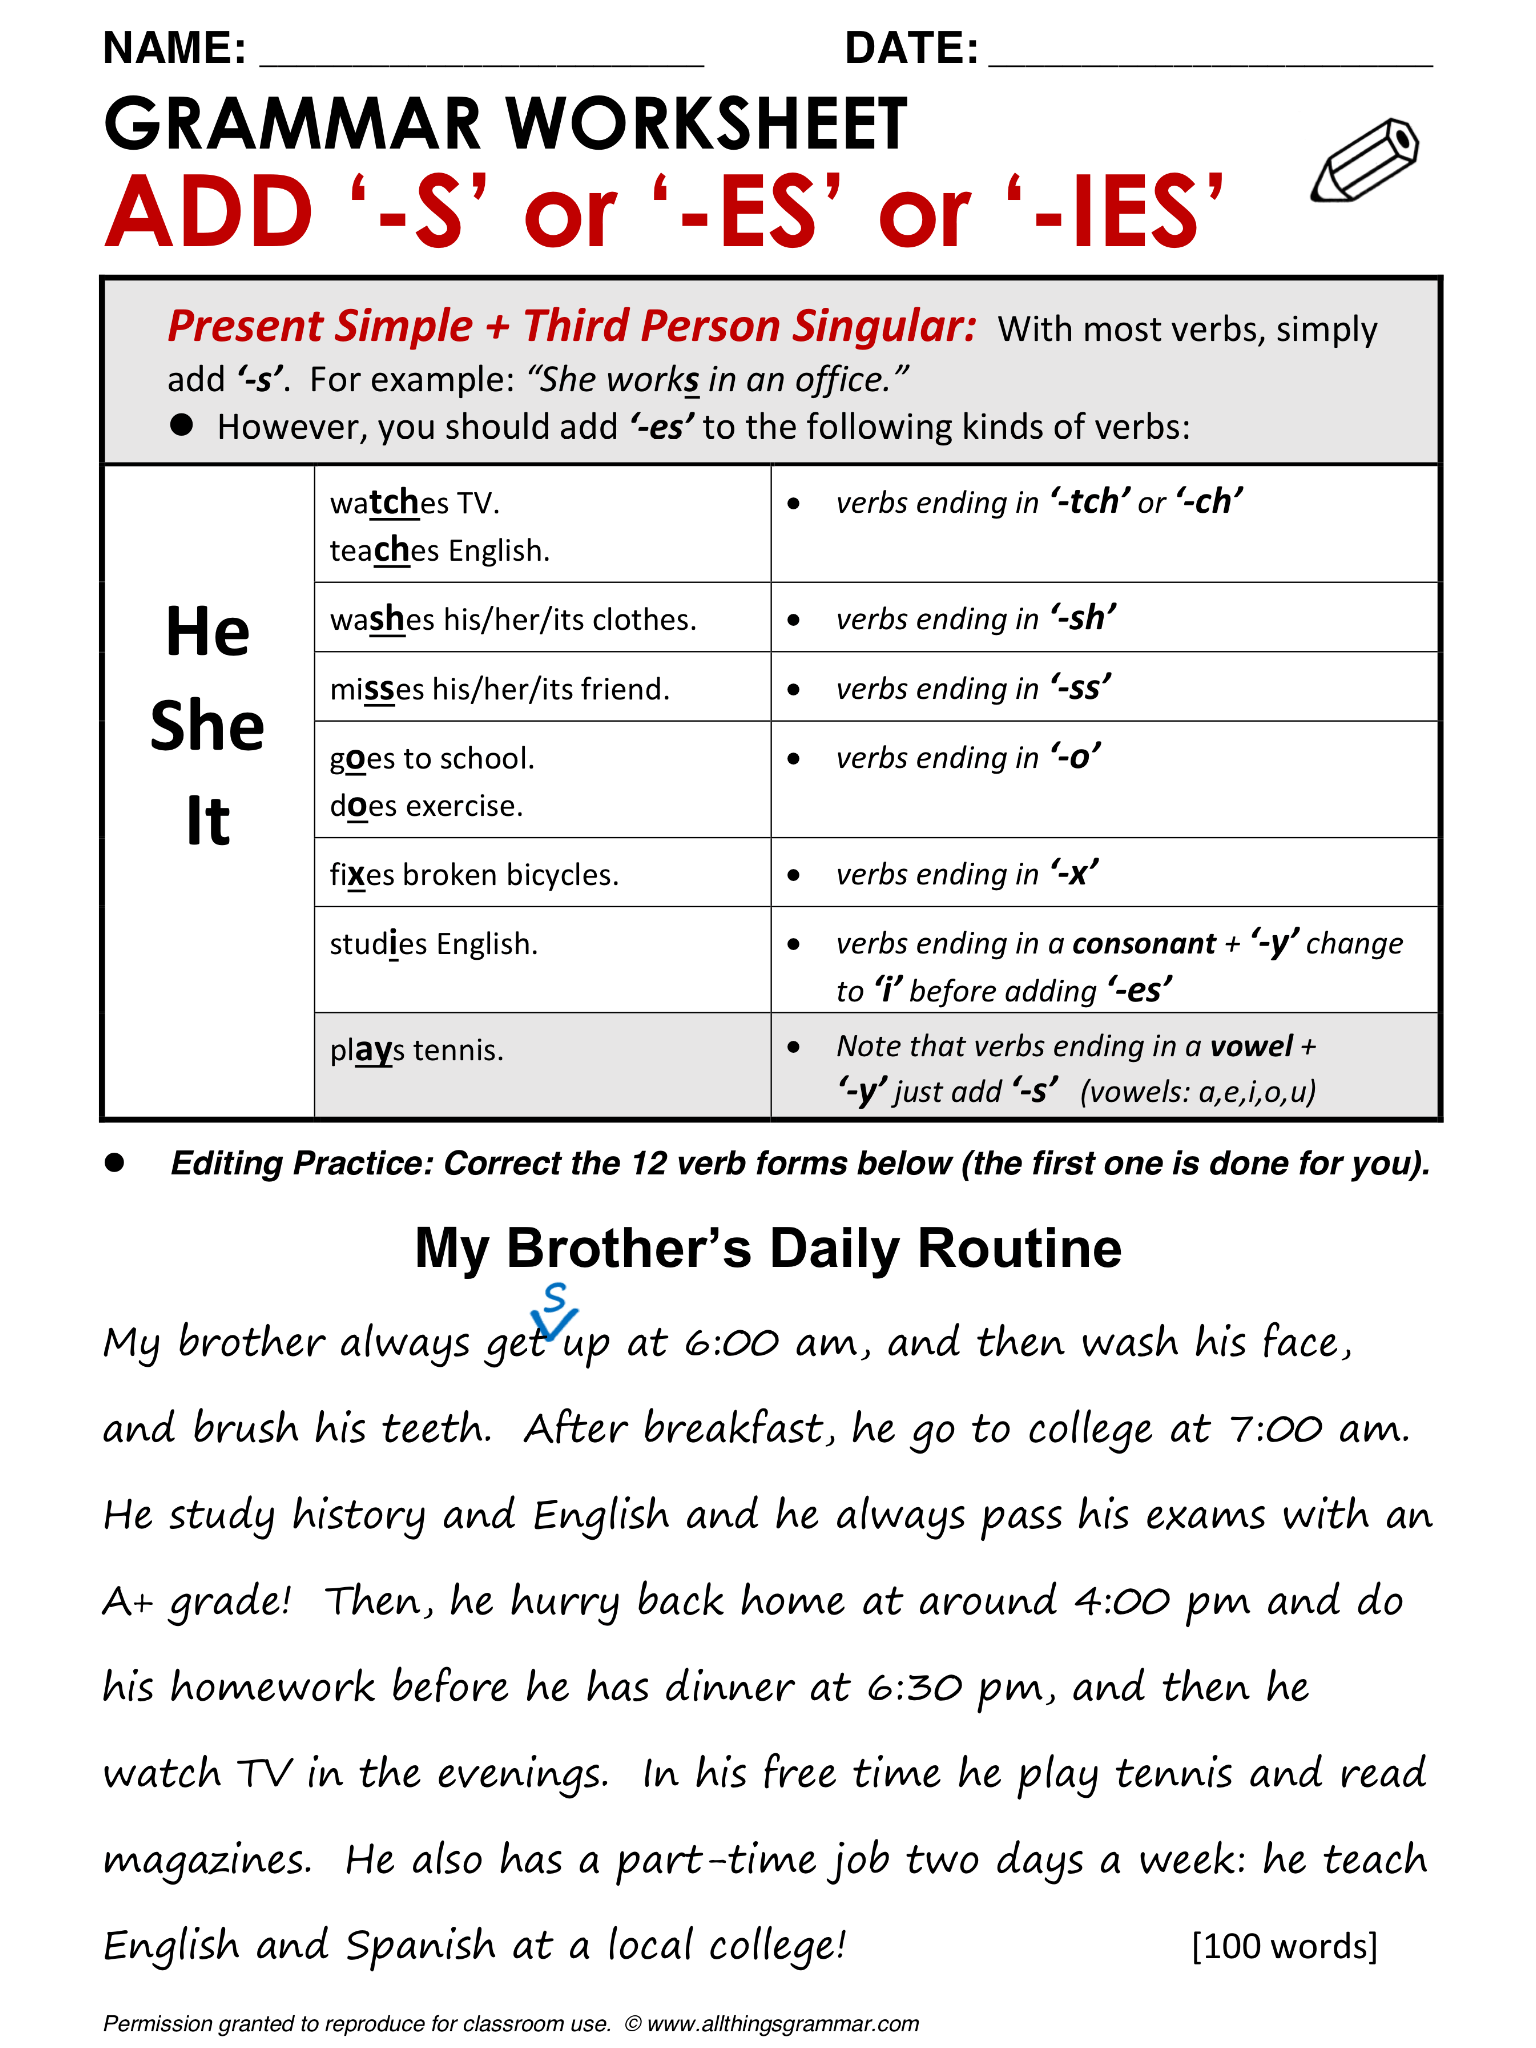 English Grammar Add S Or Es Or Ies Present Simple Third Person Singular Endings